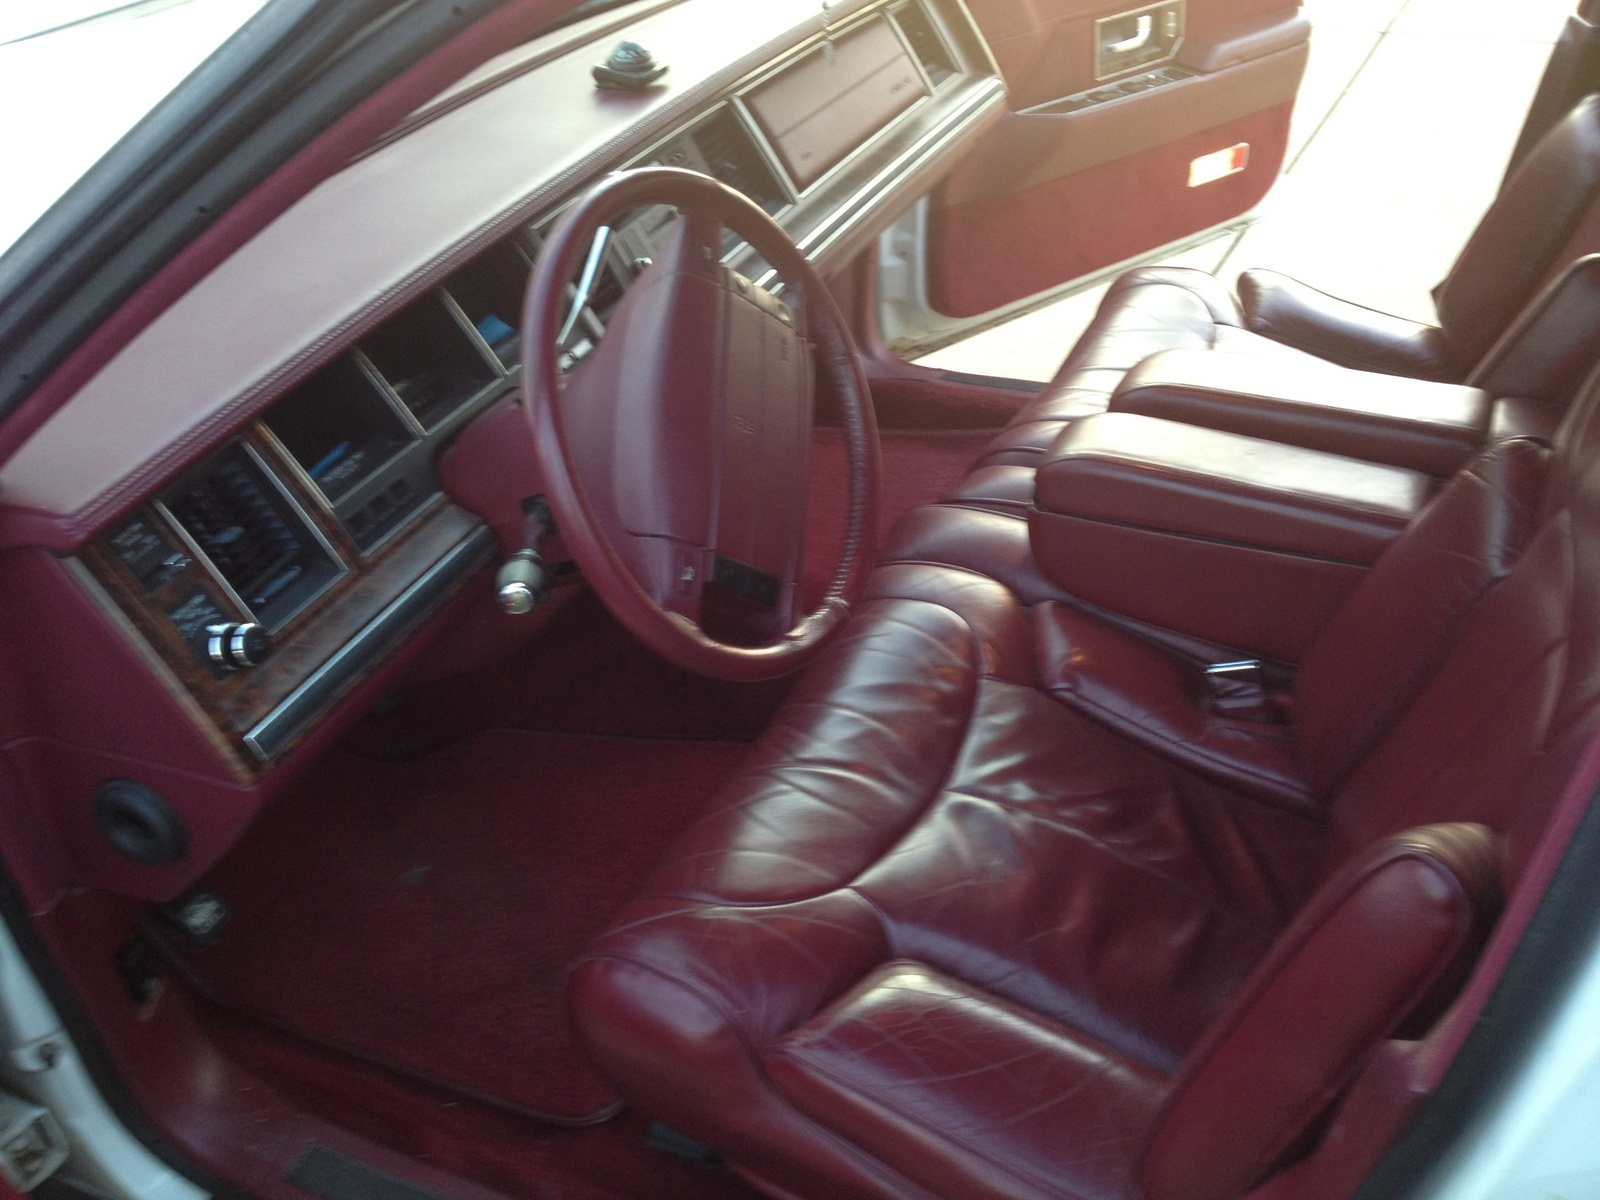 1992 lincoln town car interior pictures cargurus. Black Bedroom Furniture Sets. Home Design Ideas